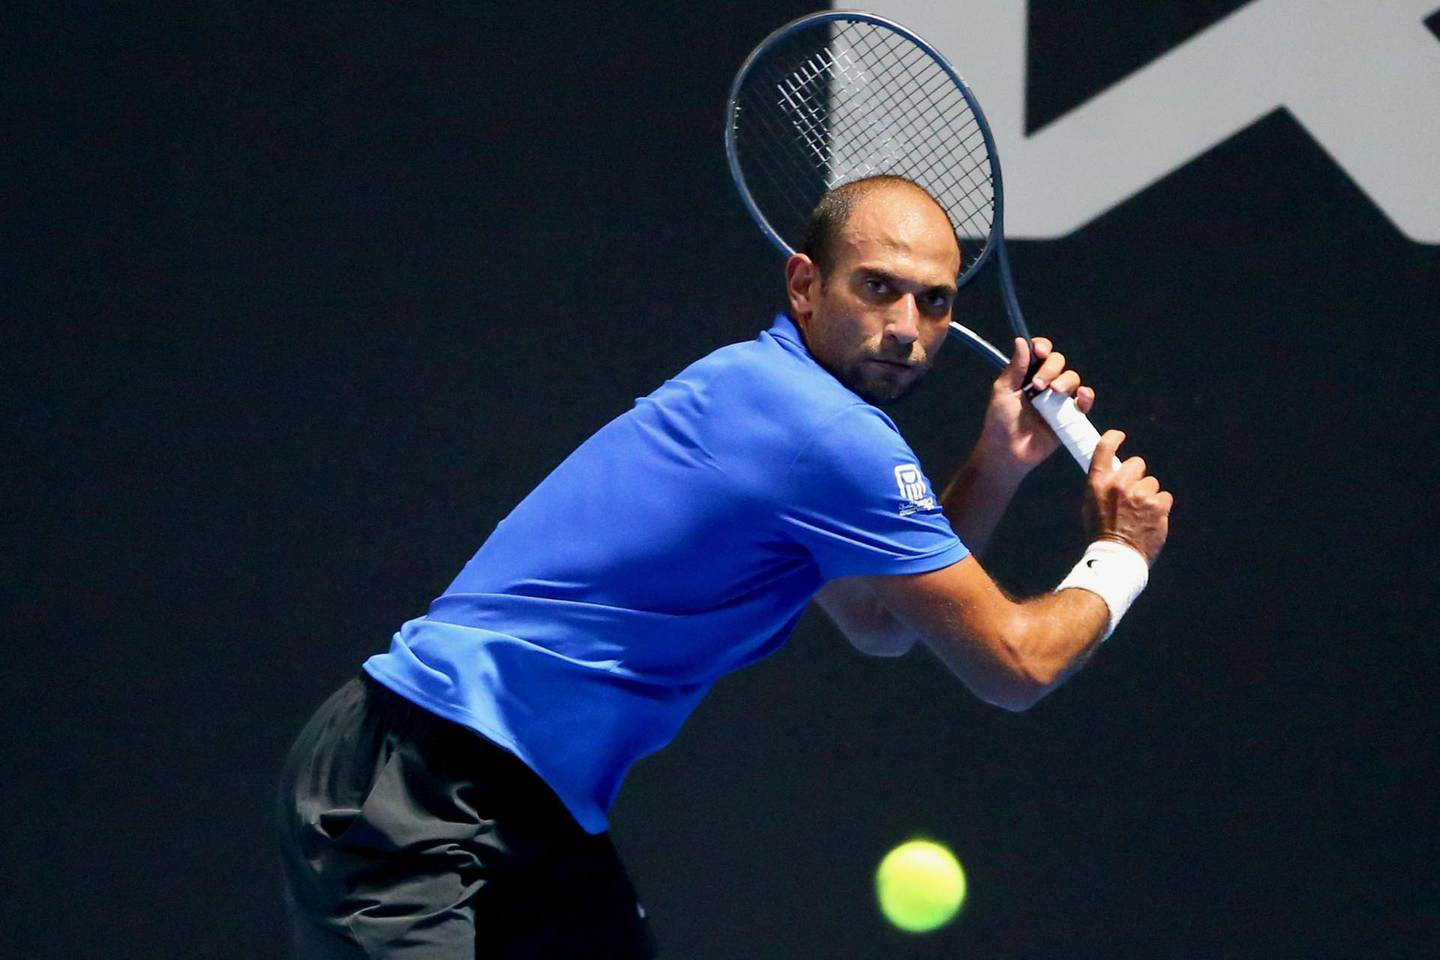 Mohamed SAFWAT (EGY) playing against Arthur DE GREEF (BEL) in their round 1 match on court 2 at the Australian Open 2021 Men's Qualifying at the Khalifa International Tennis and Squash Complex in Doha, Qatar, Sunday, January 10, 2021. Tennis Australia Photo by Samer Alrejjal